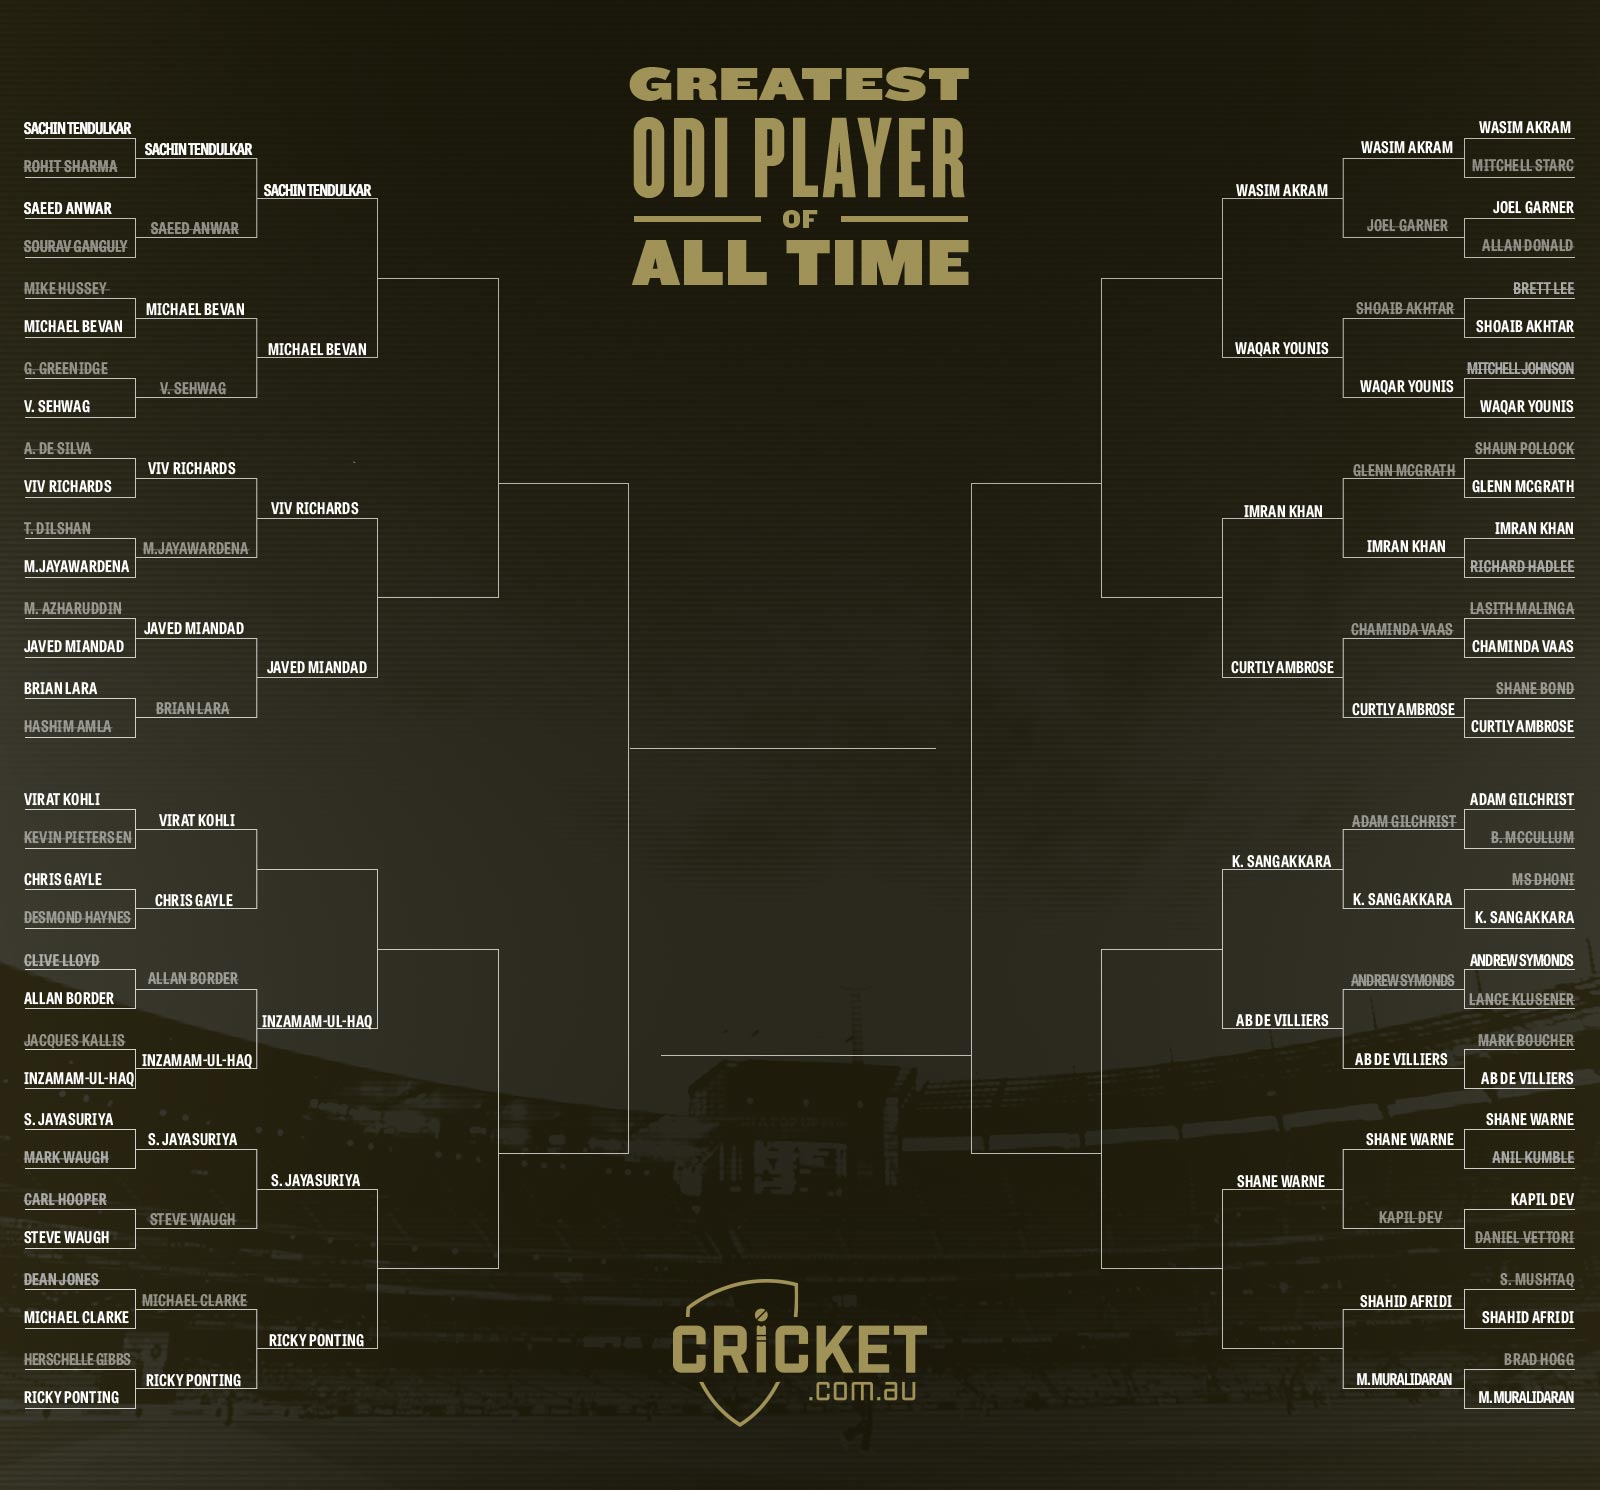 Vote for the greatest ODI player of all time